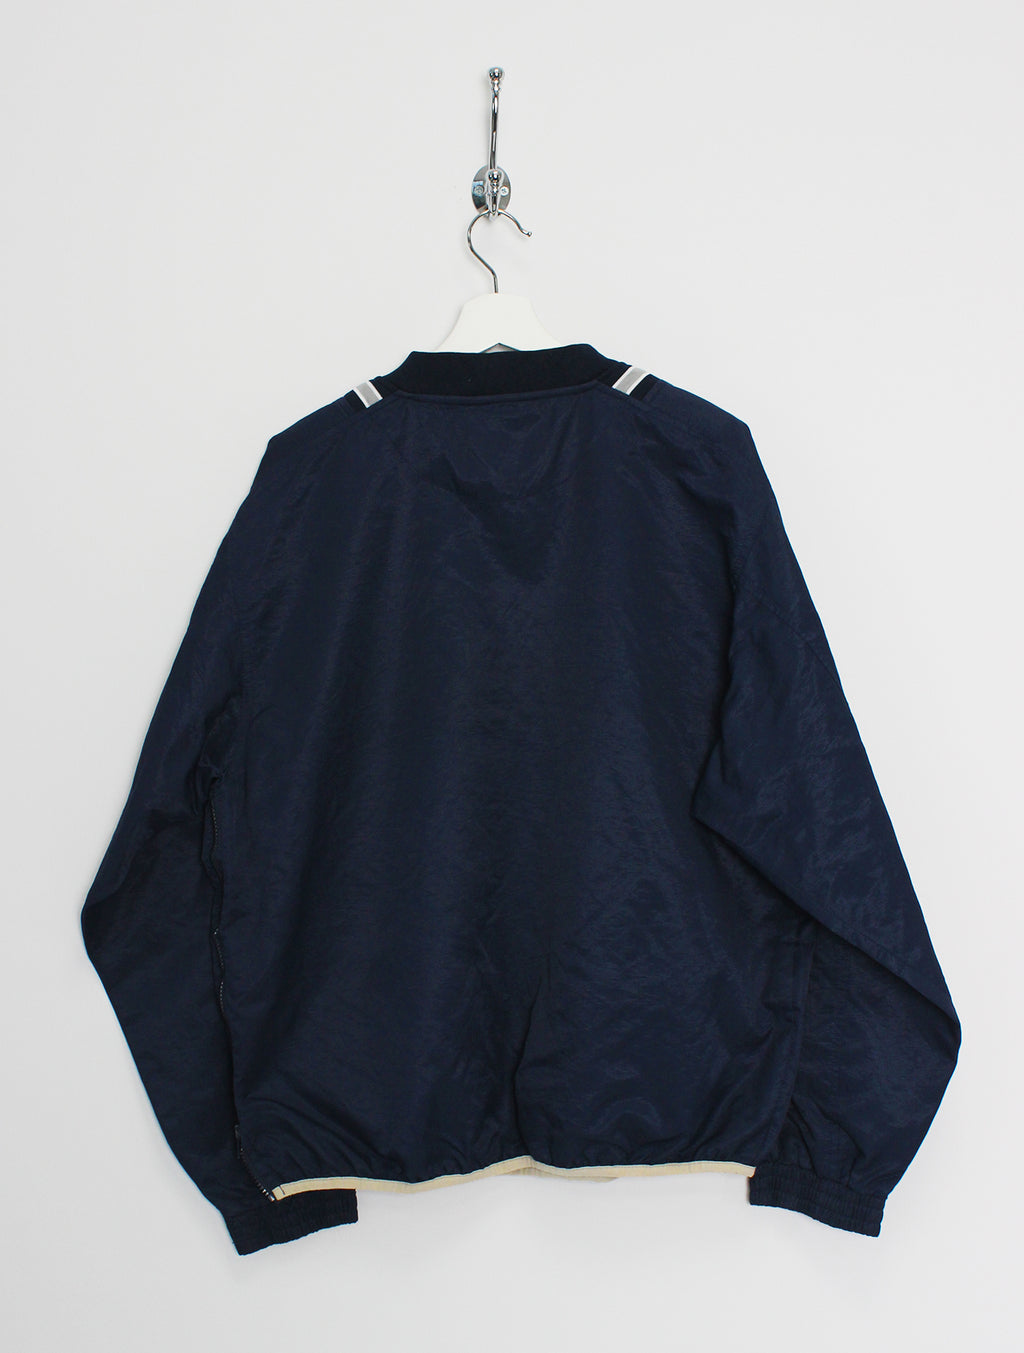 New York Yankees Pullover (M)